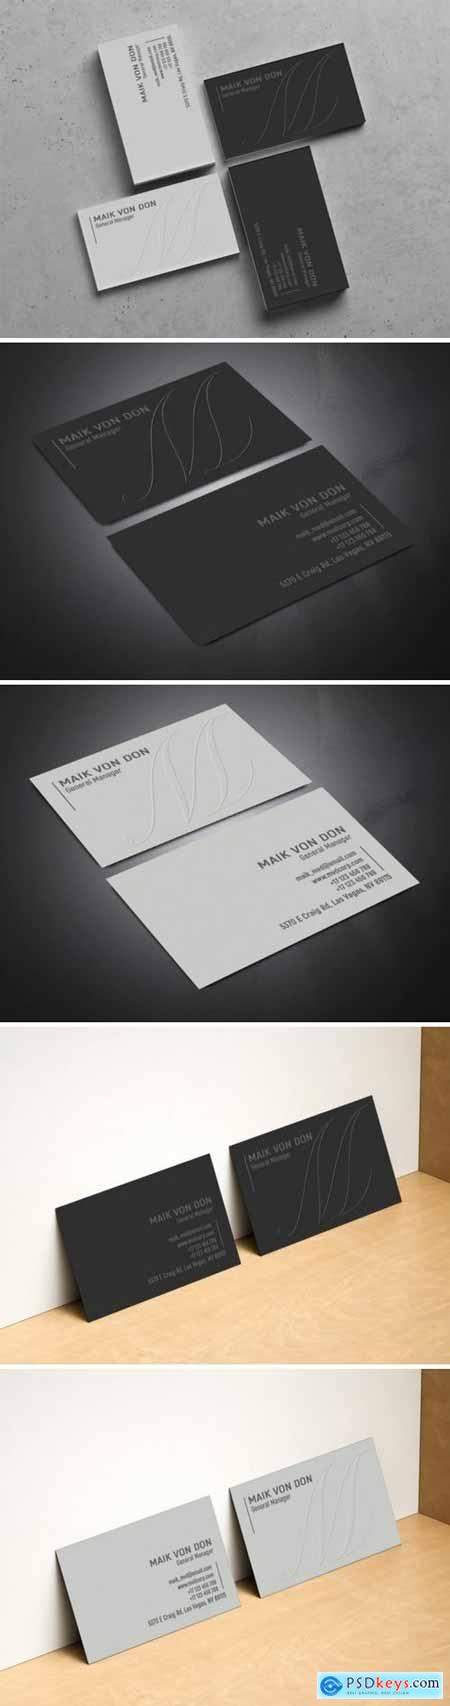 Business Card 939421